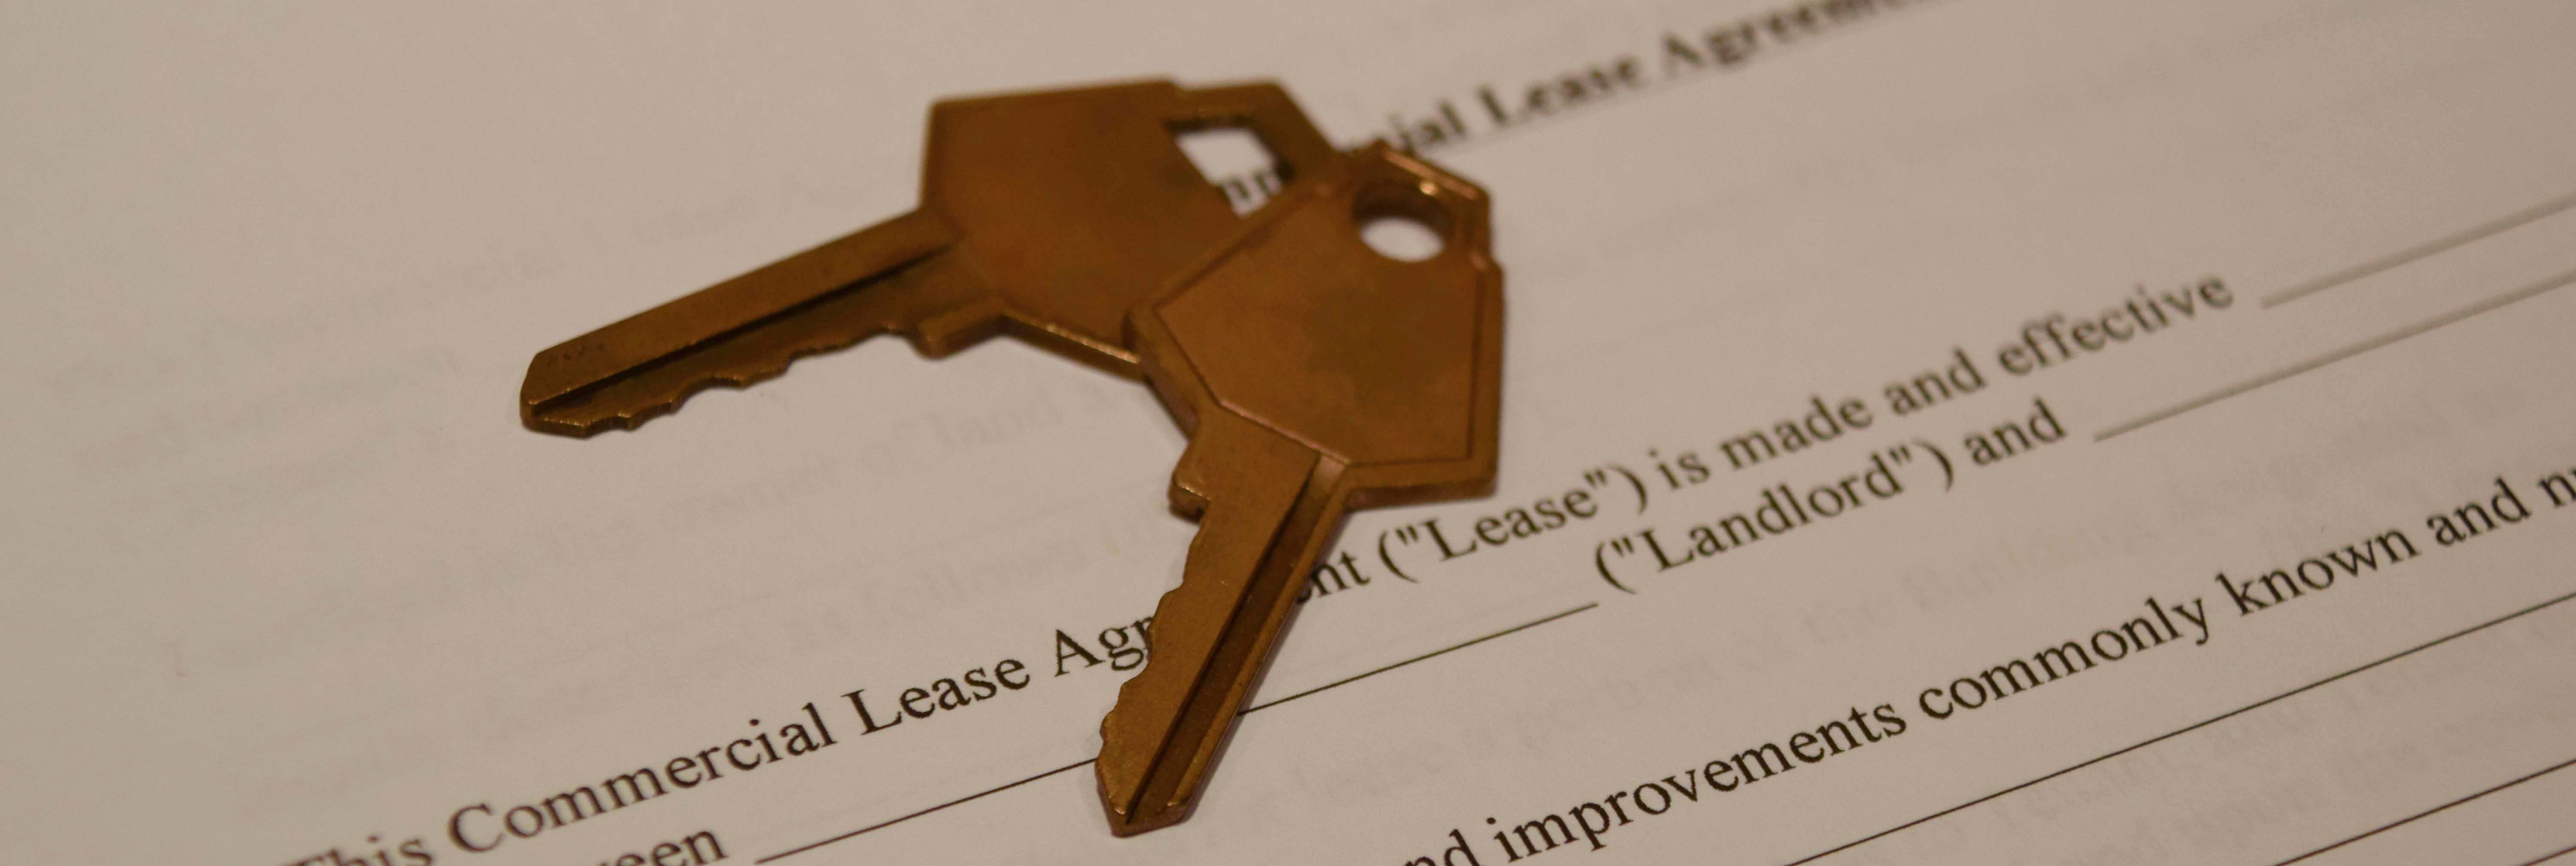 Tenant Holdover - What if I Stay Past My Lease Term? | Baker